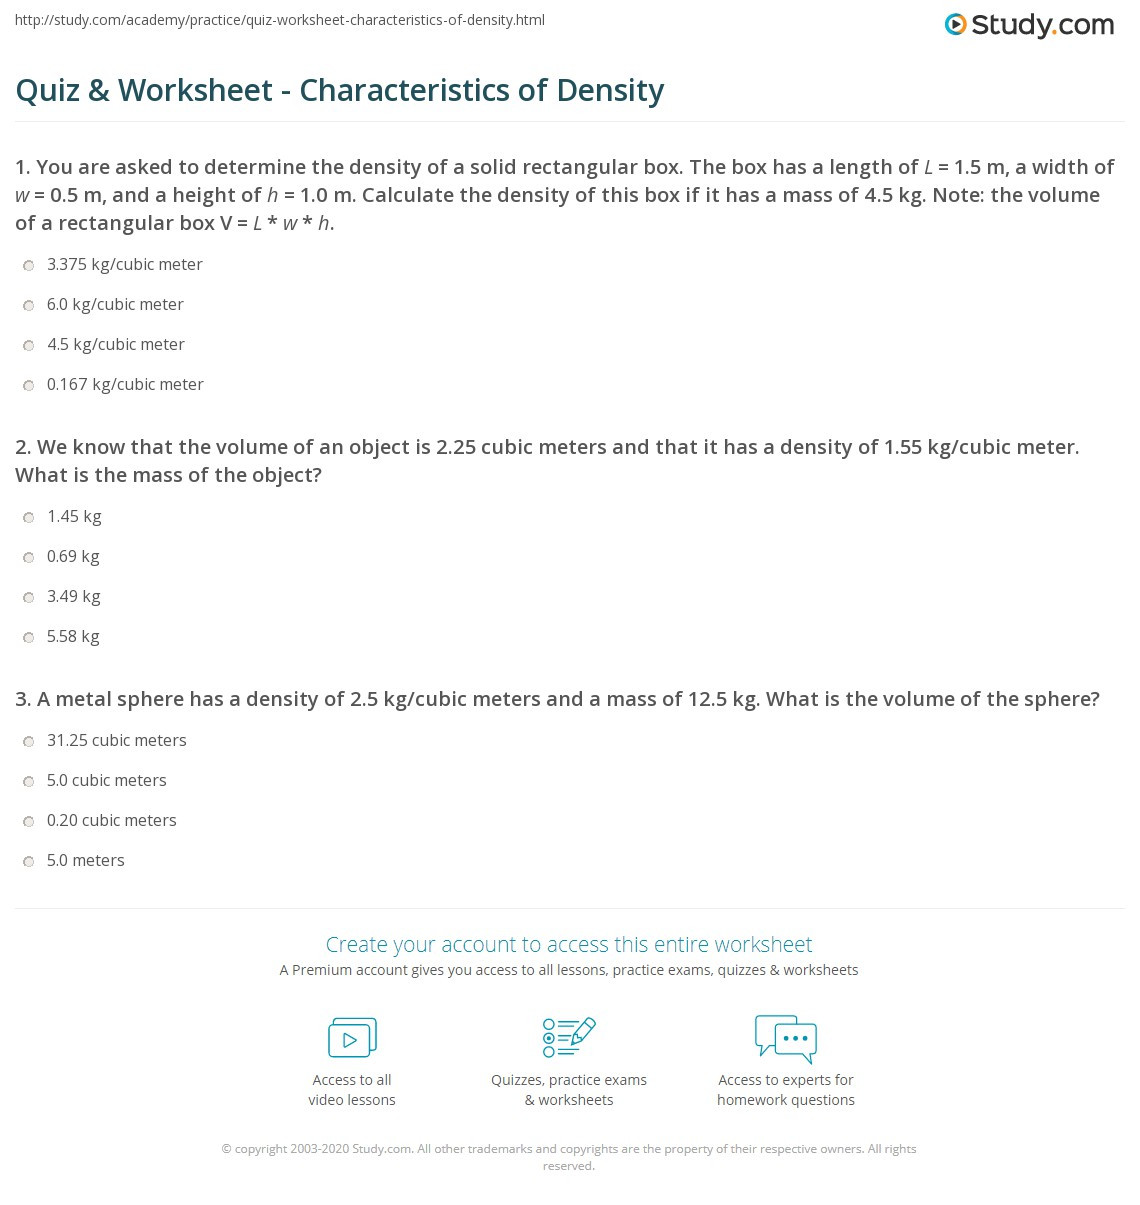 Density Puzzle Worksheets Printable Worksheets And Activities For Teachers Parents Tutors And Homeschool Families